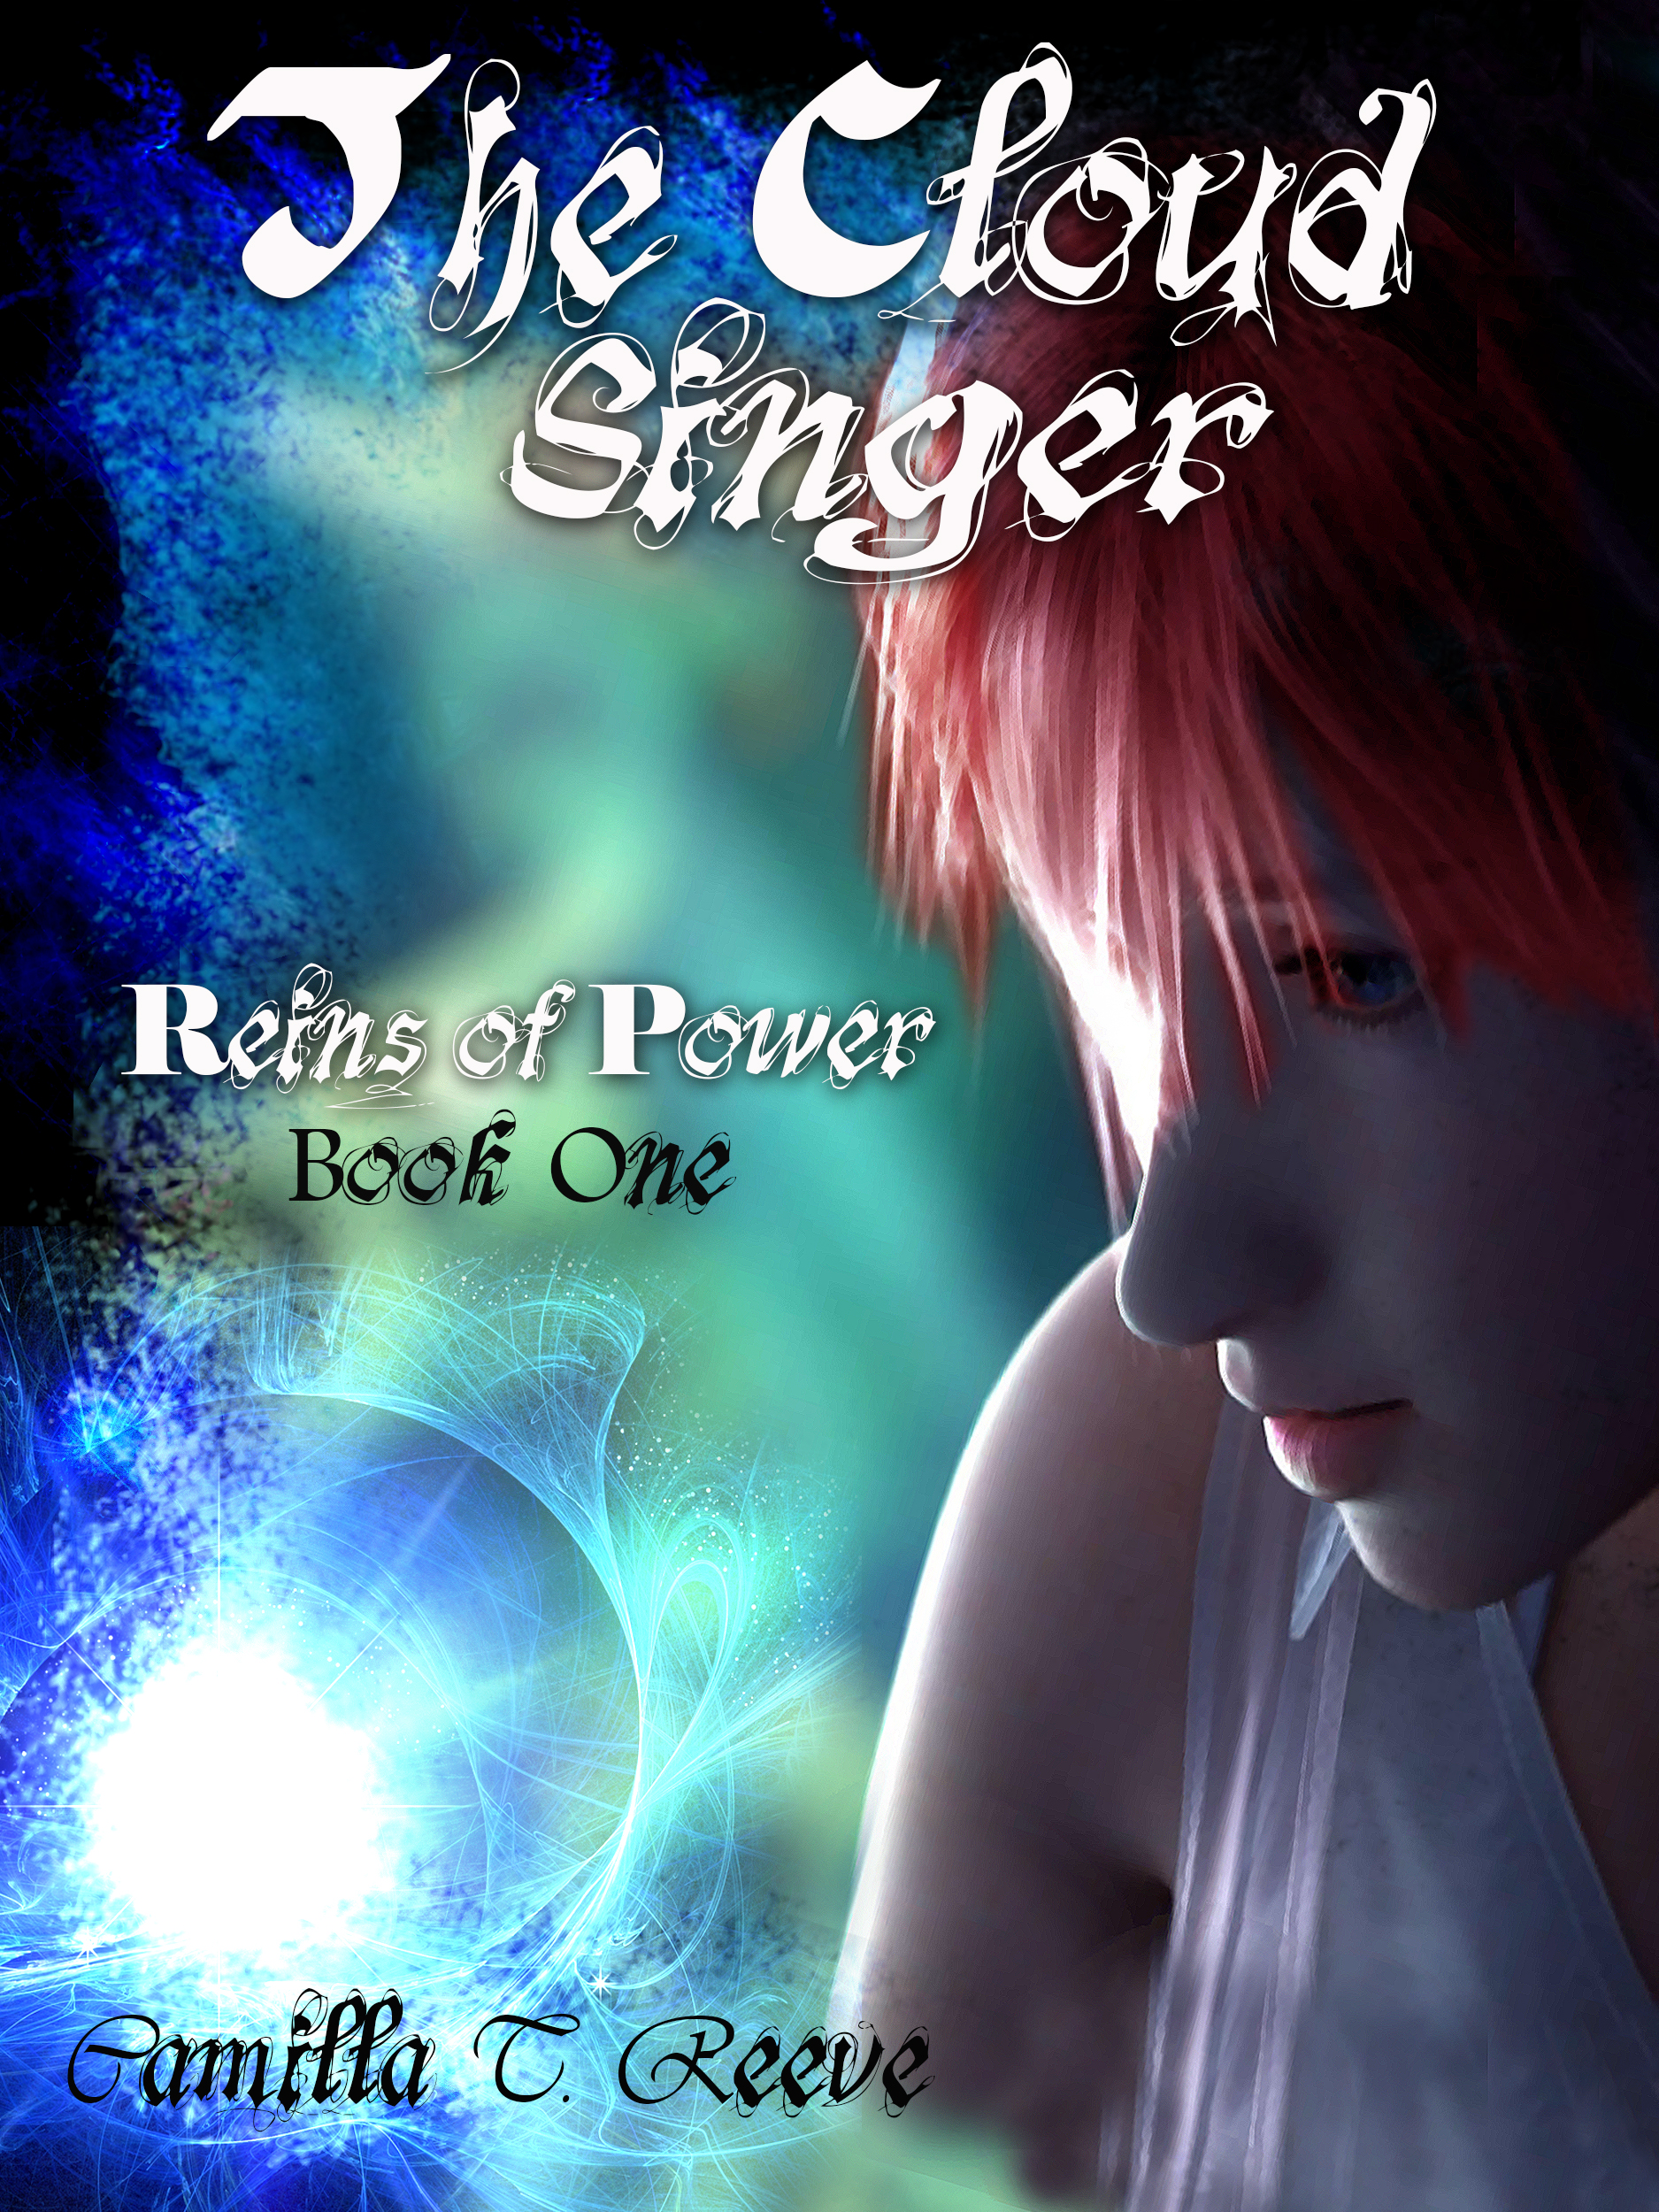 The Cloud Singer, front cover